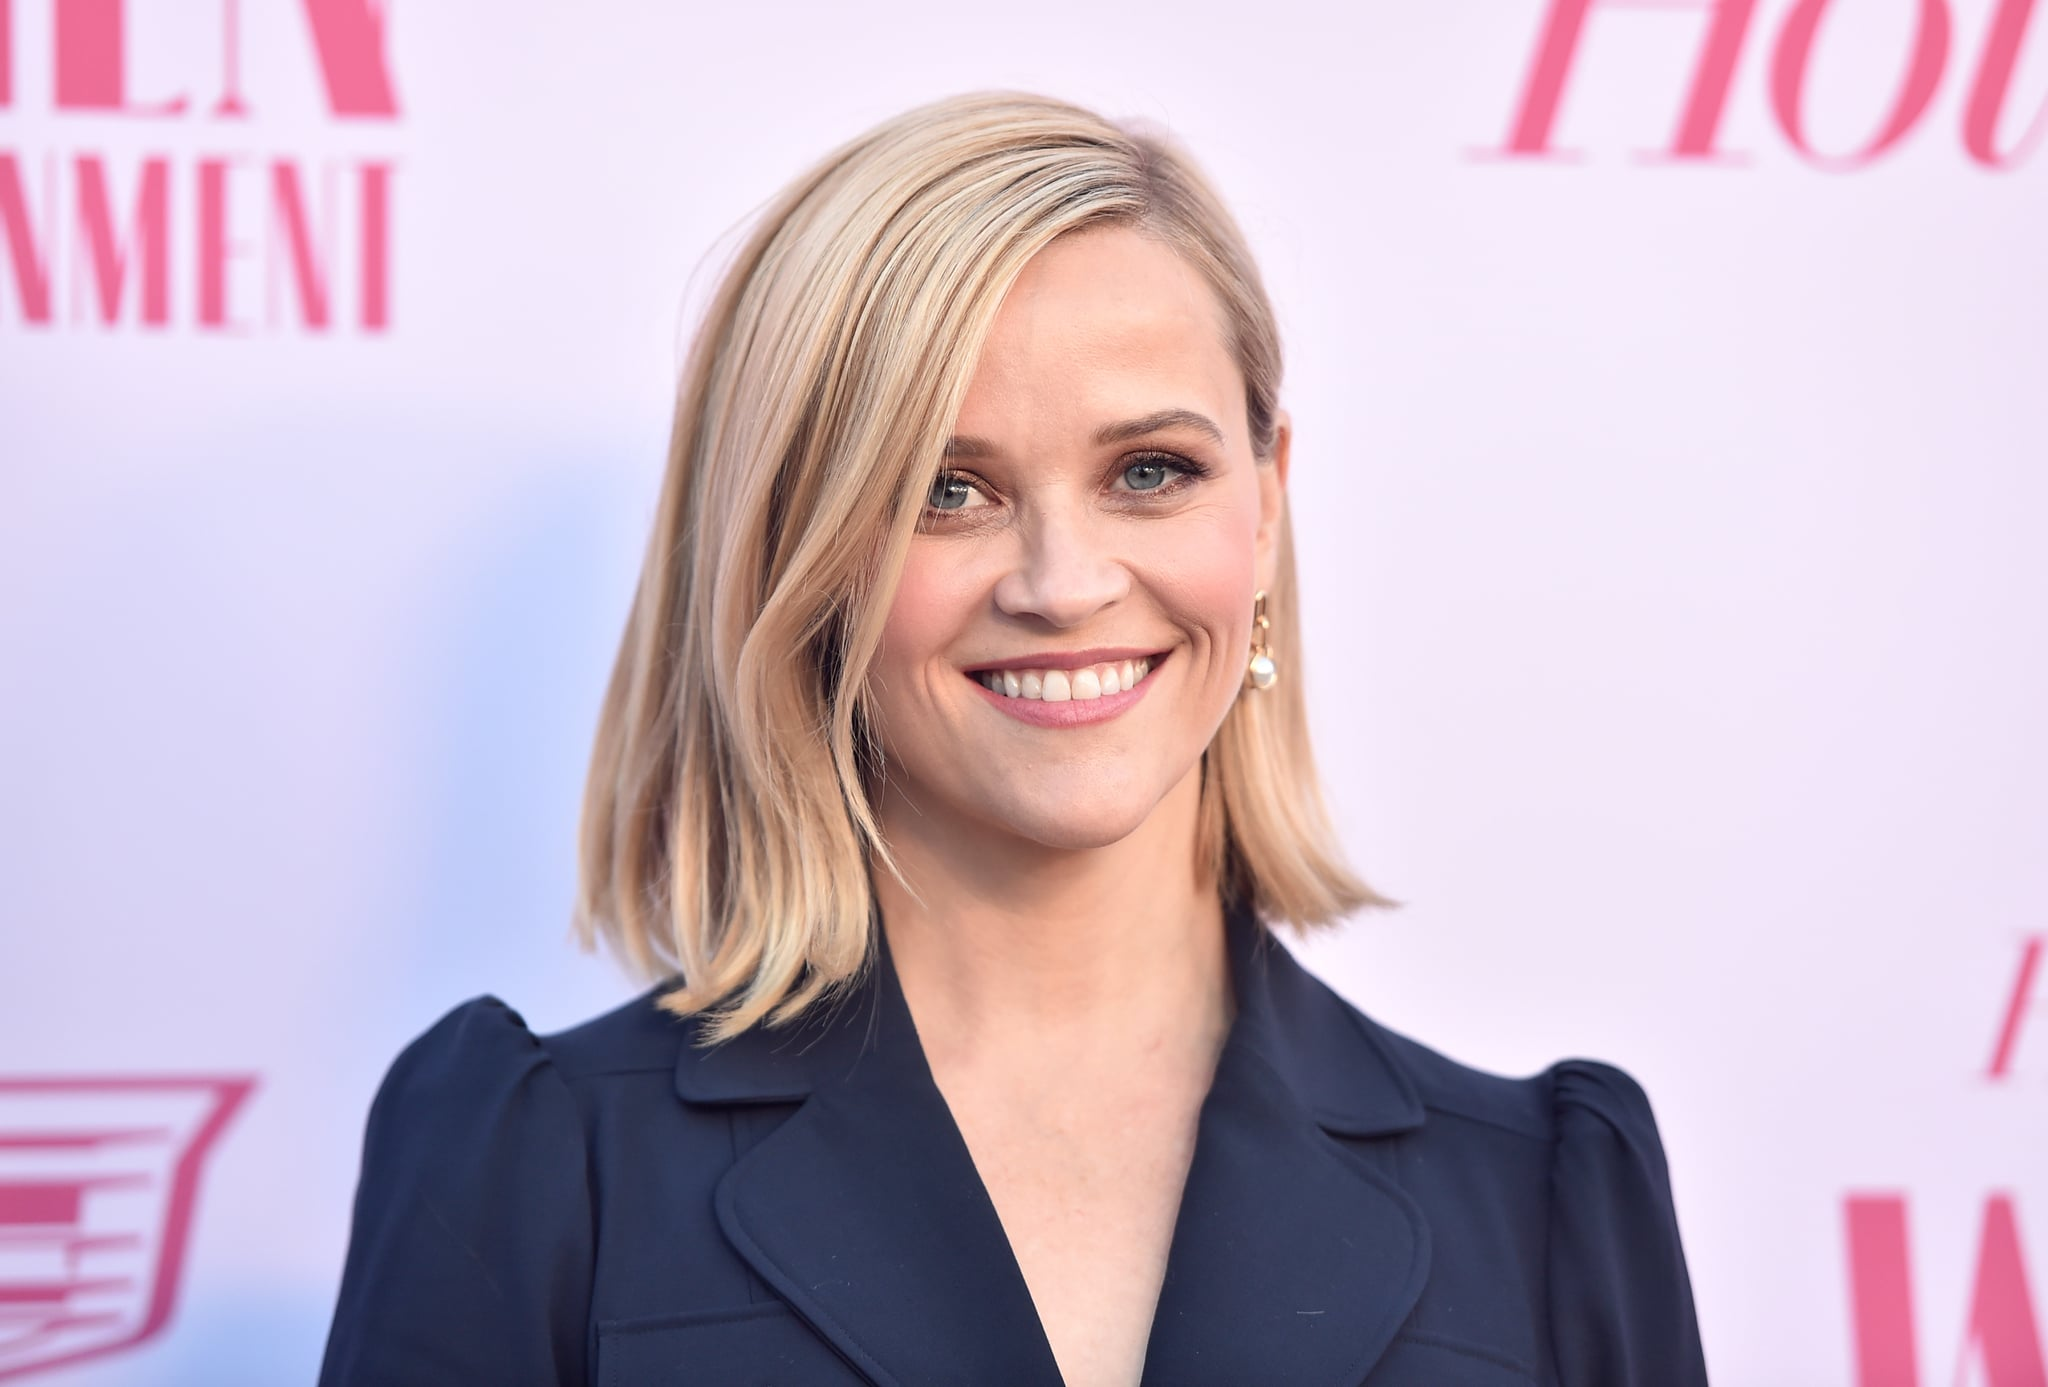 HOLLYWOOD, CALIFORNIA - DECEMBER 11: Honouree Reese Witherspoon attends The Hollywood Reporter's Power 100 Women in Entertainment at Milk Studios on December 11, 2019 in Hollywood, California. (Photo by Alberto E. Rodriguez/Getty Images for The Hollywood Reporter)